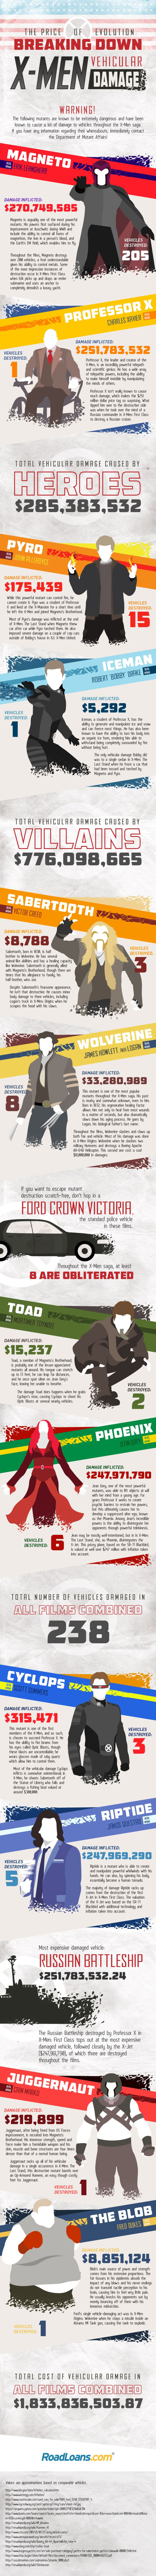 Which X-Men Caused The Most Vehicle Damage (infographic)